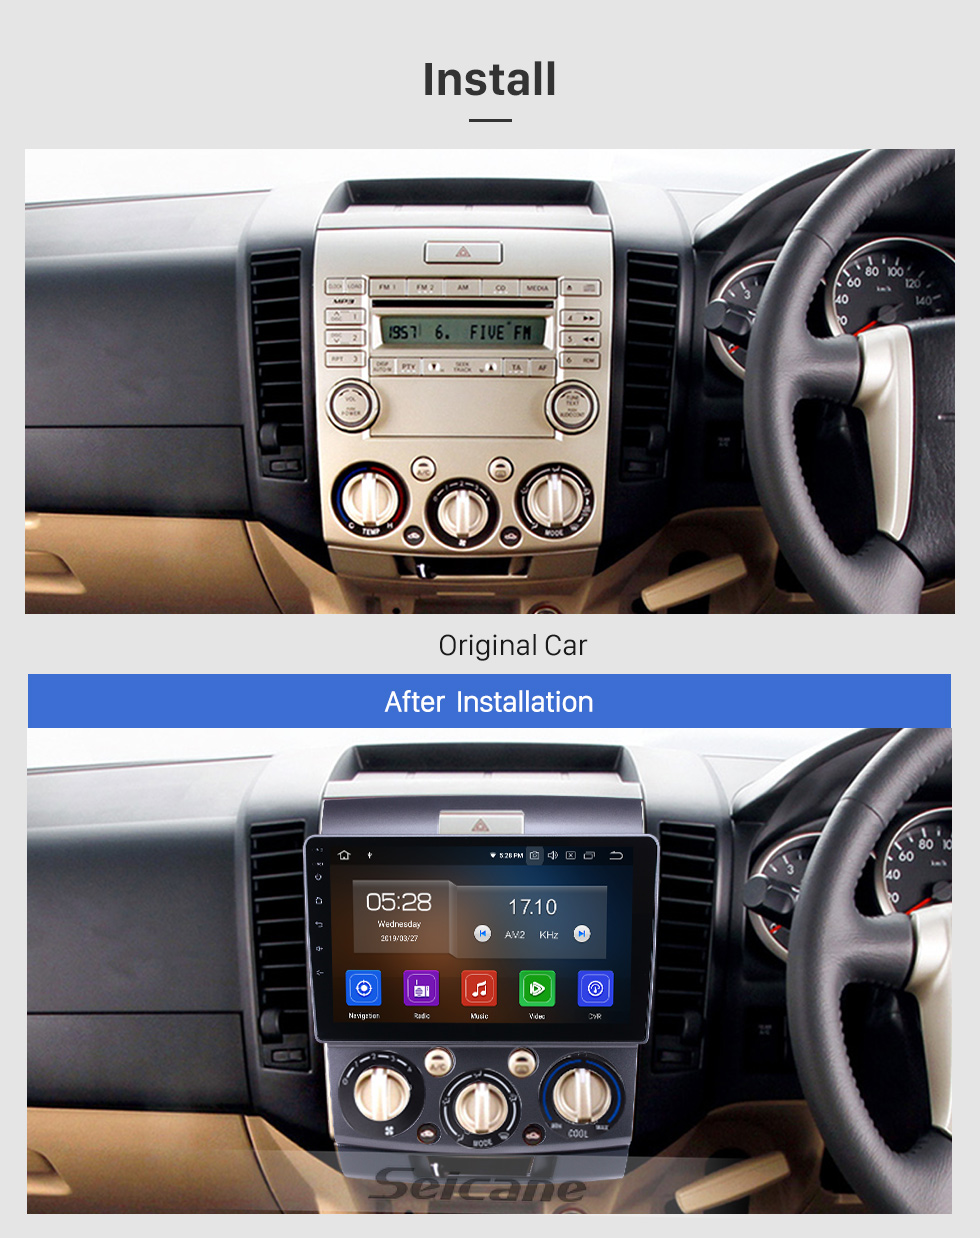 Seicane Android 9.0 Radio de navegación GPS de 9 pulgadas para Ford Everest / Ranger Mazda BT-50 2006-2010 con pantalla táctil HD Carplay Soporte Bluetooth Bluetooth TV digital